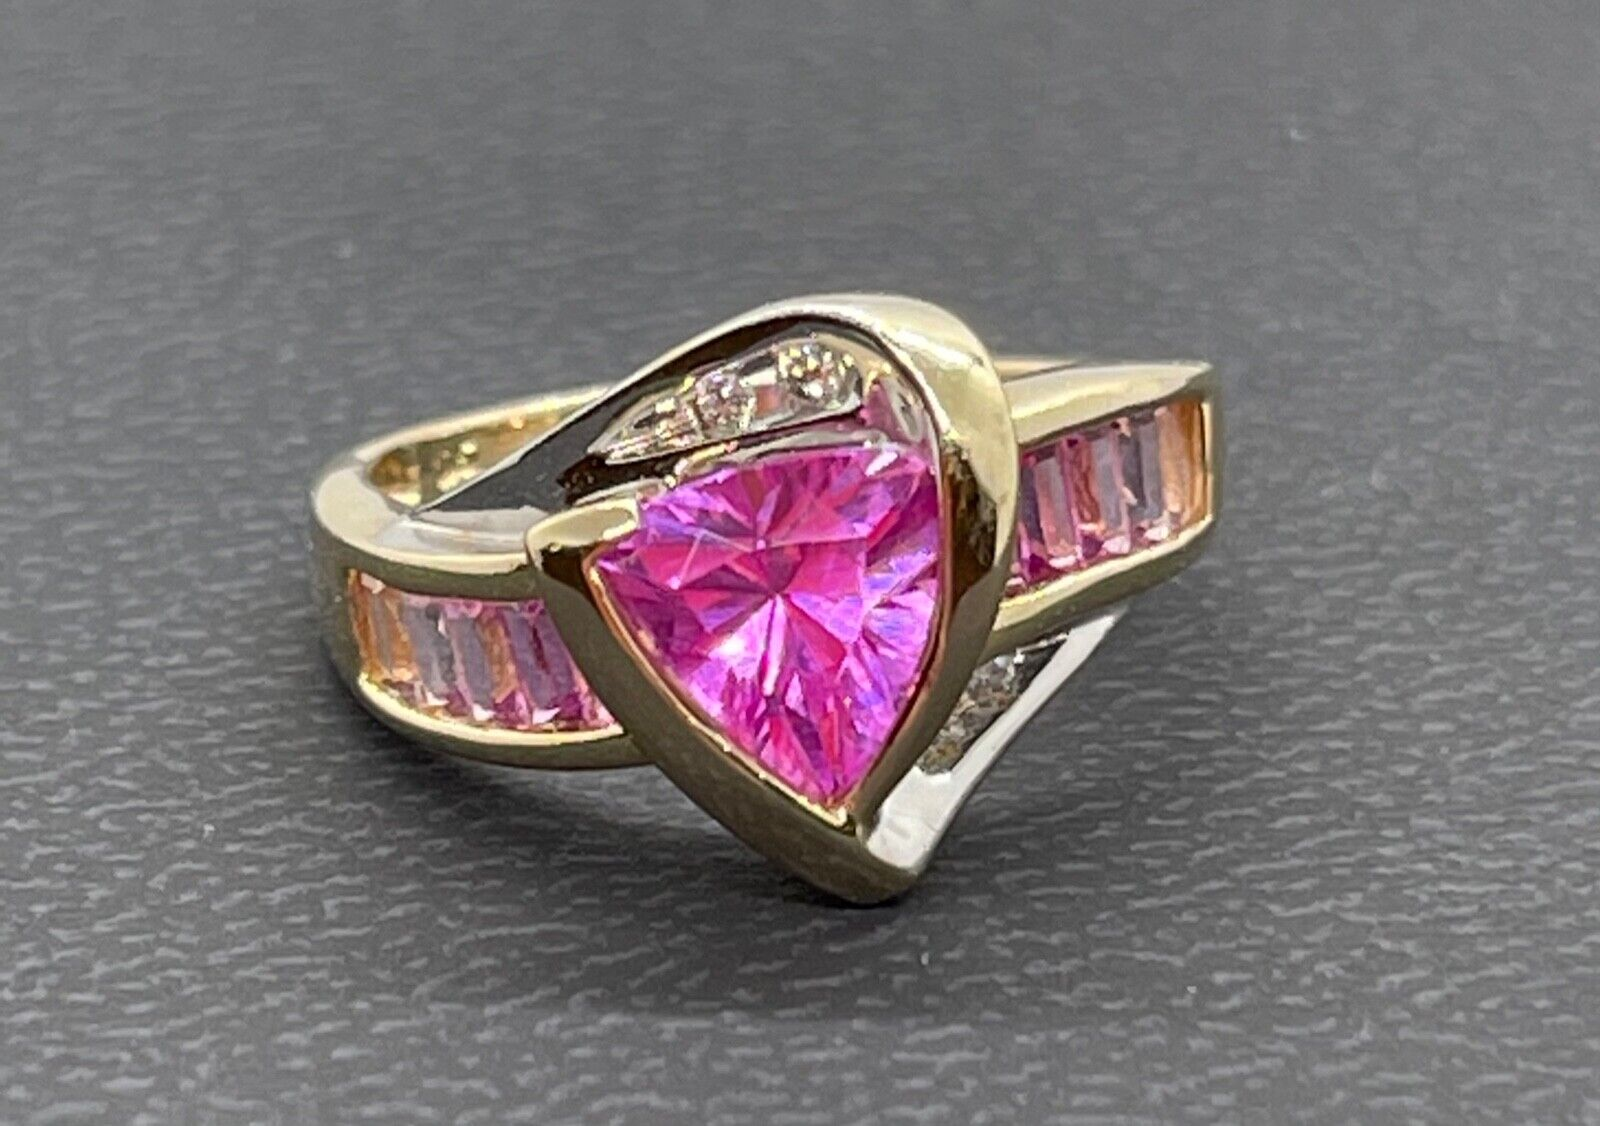 10K Yellow Gold Ring With Lab Created Pink Sapphires And Diamonds Size 6.75 - $179.00